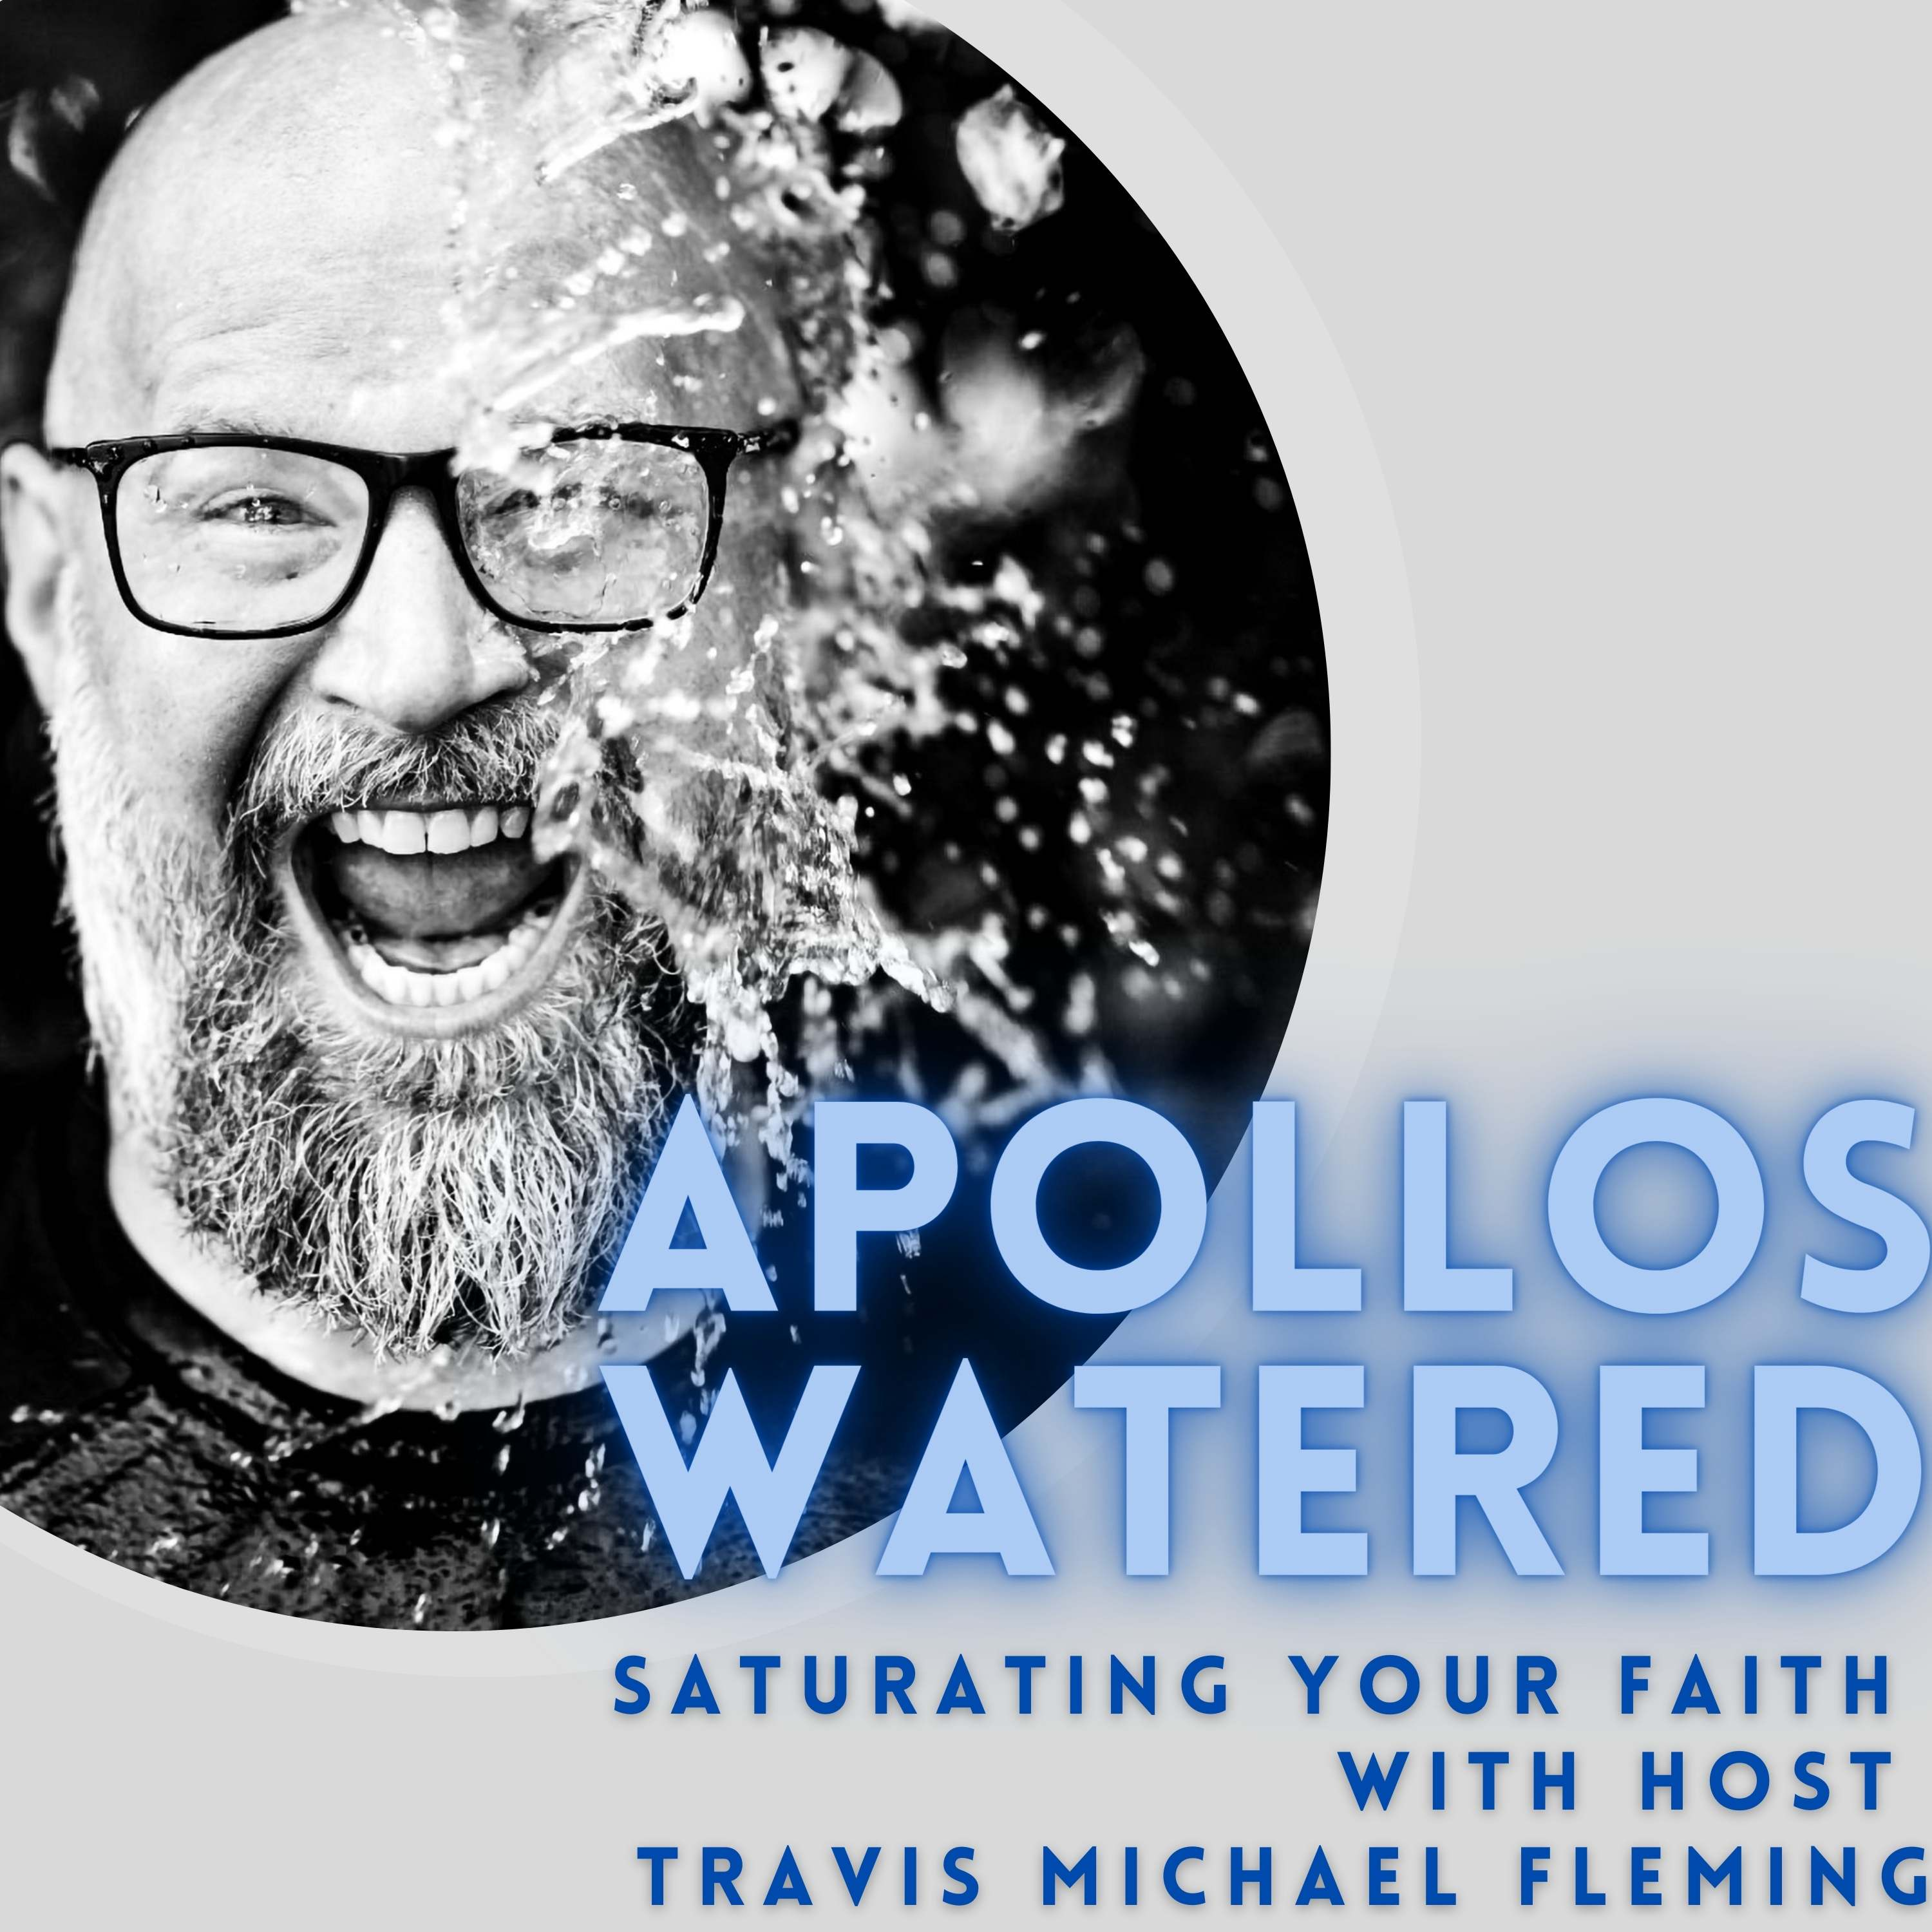 Artwork for podcast Apollos Watered